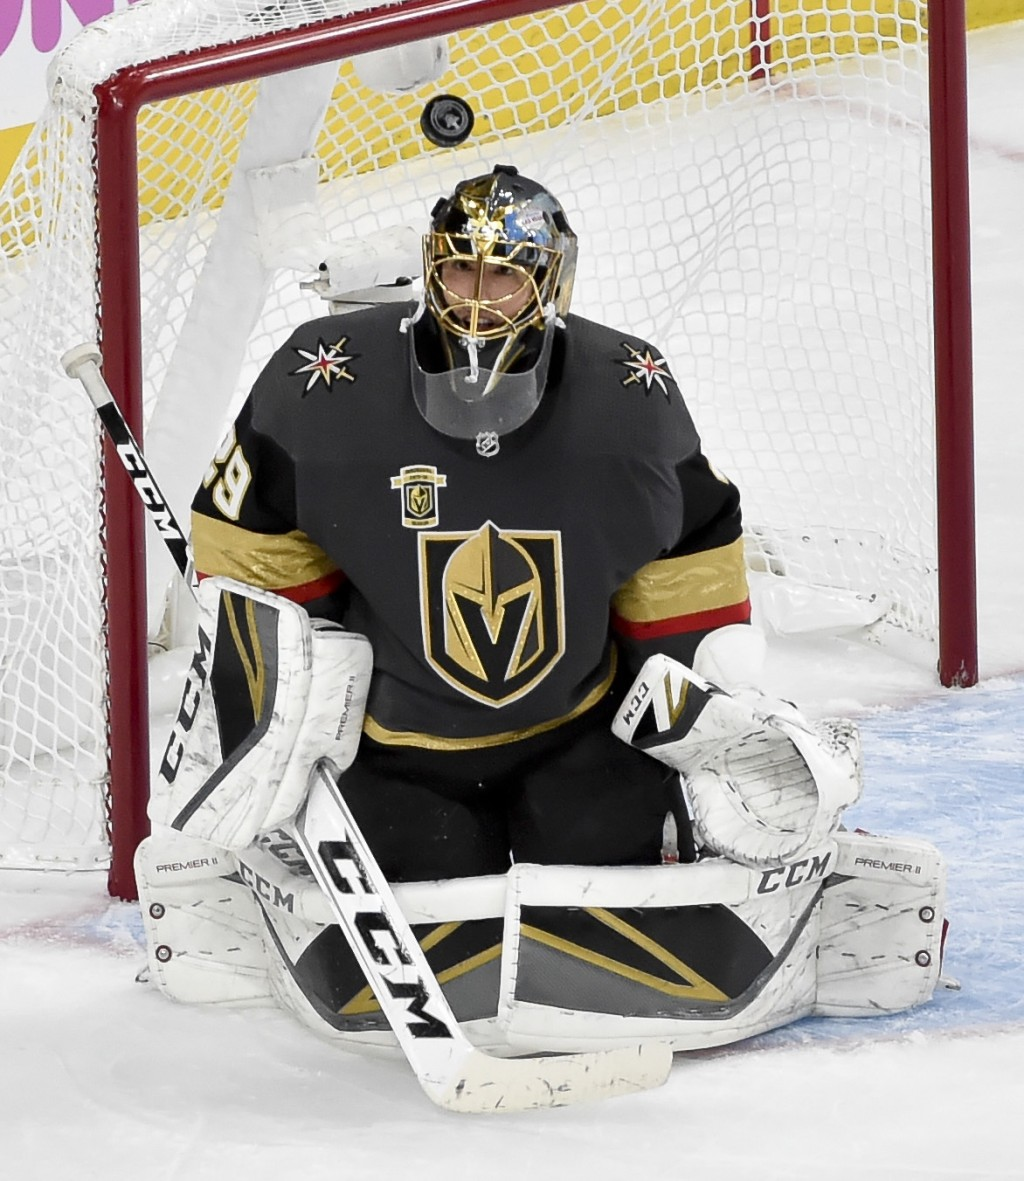 Vegas Golden Knights goaltender Marc-Andre Fleury makes a save against the Winnipeg Jets during the second period of Game 3 of the NHL hockey playoffs